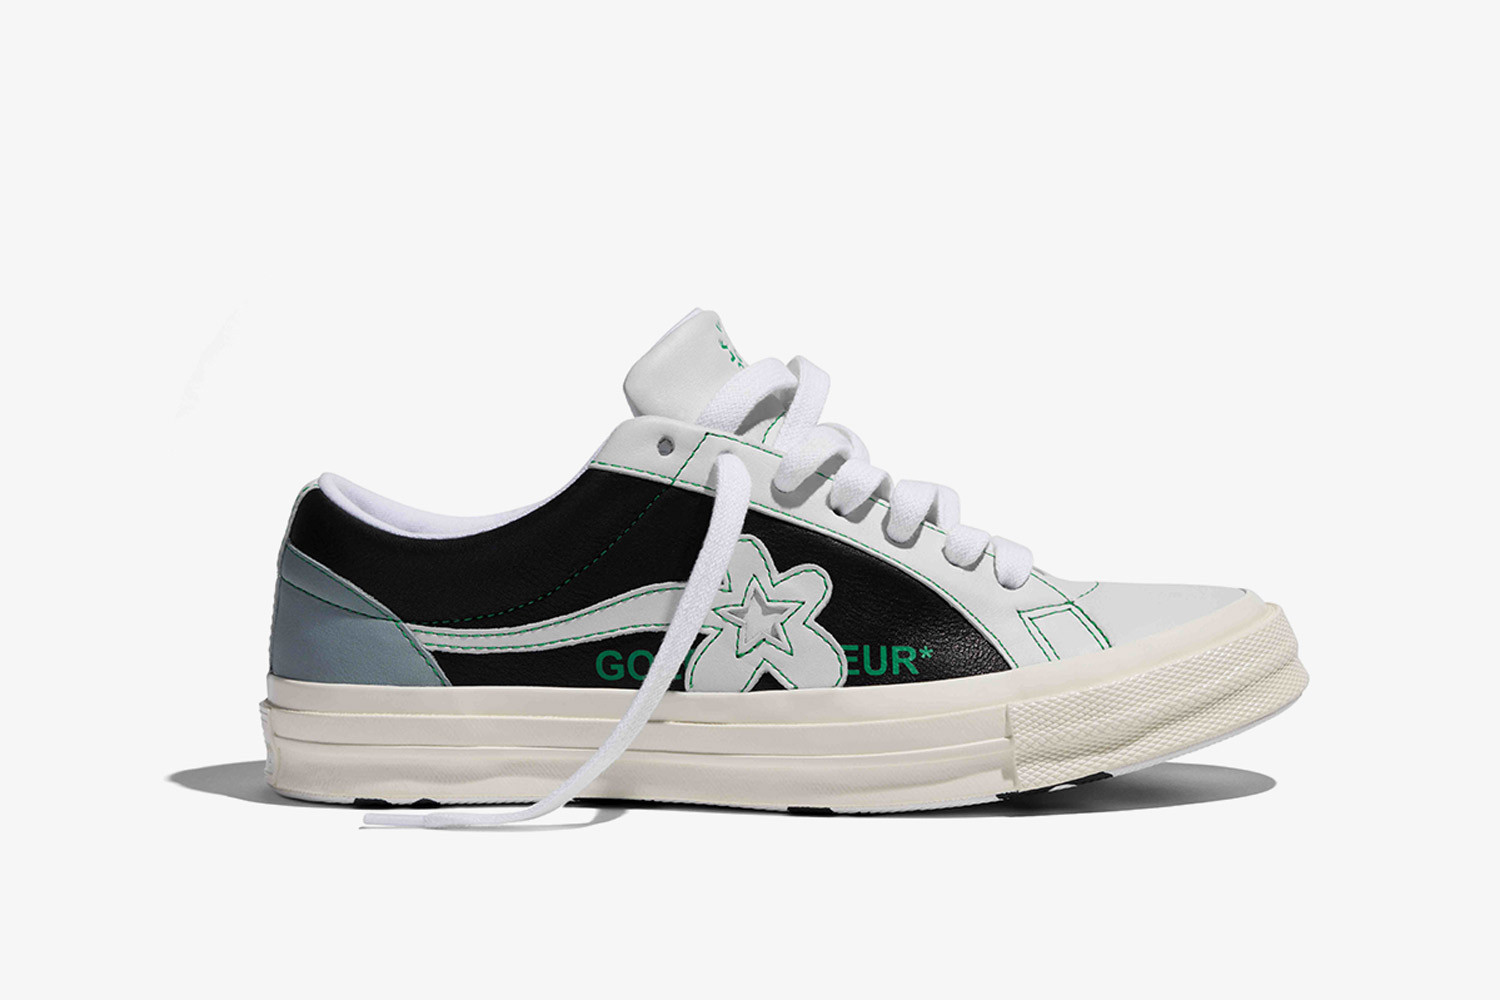 converse-golf-le-fleur-low-top-coming-soon-1